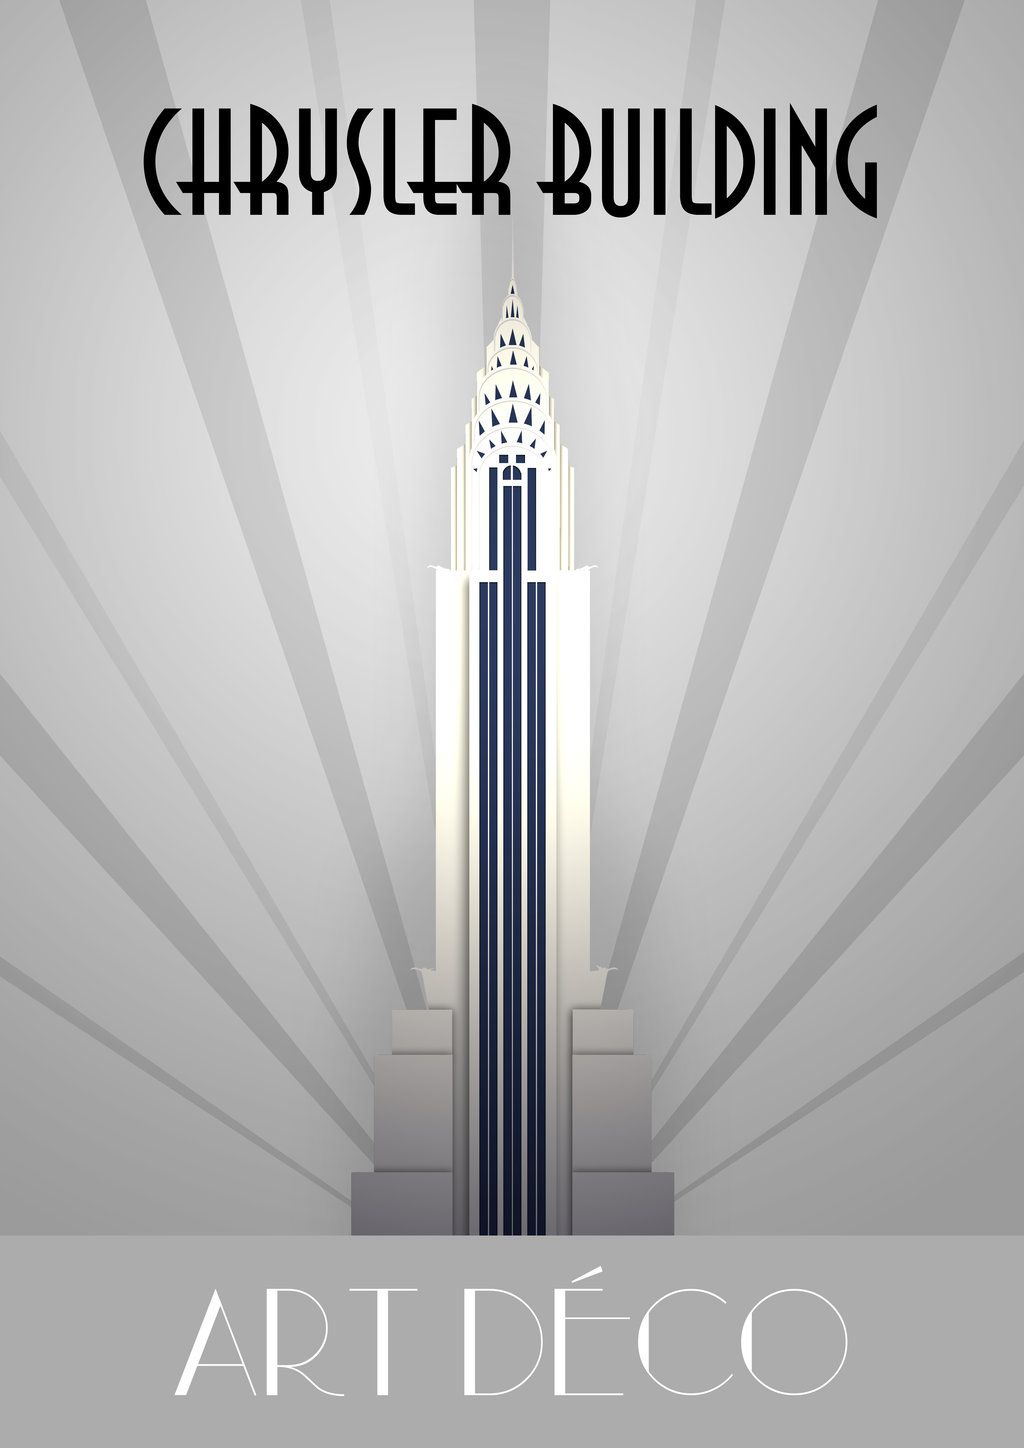 Retro Chrysler Building Poster With Images Art Deco Artwork